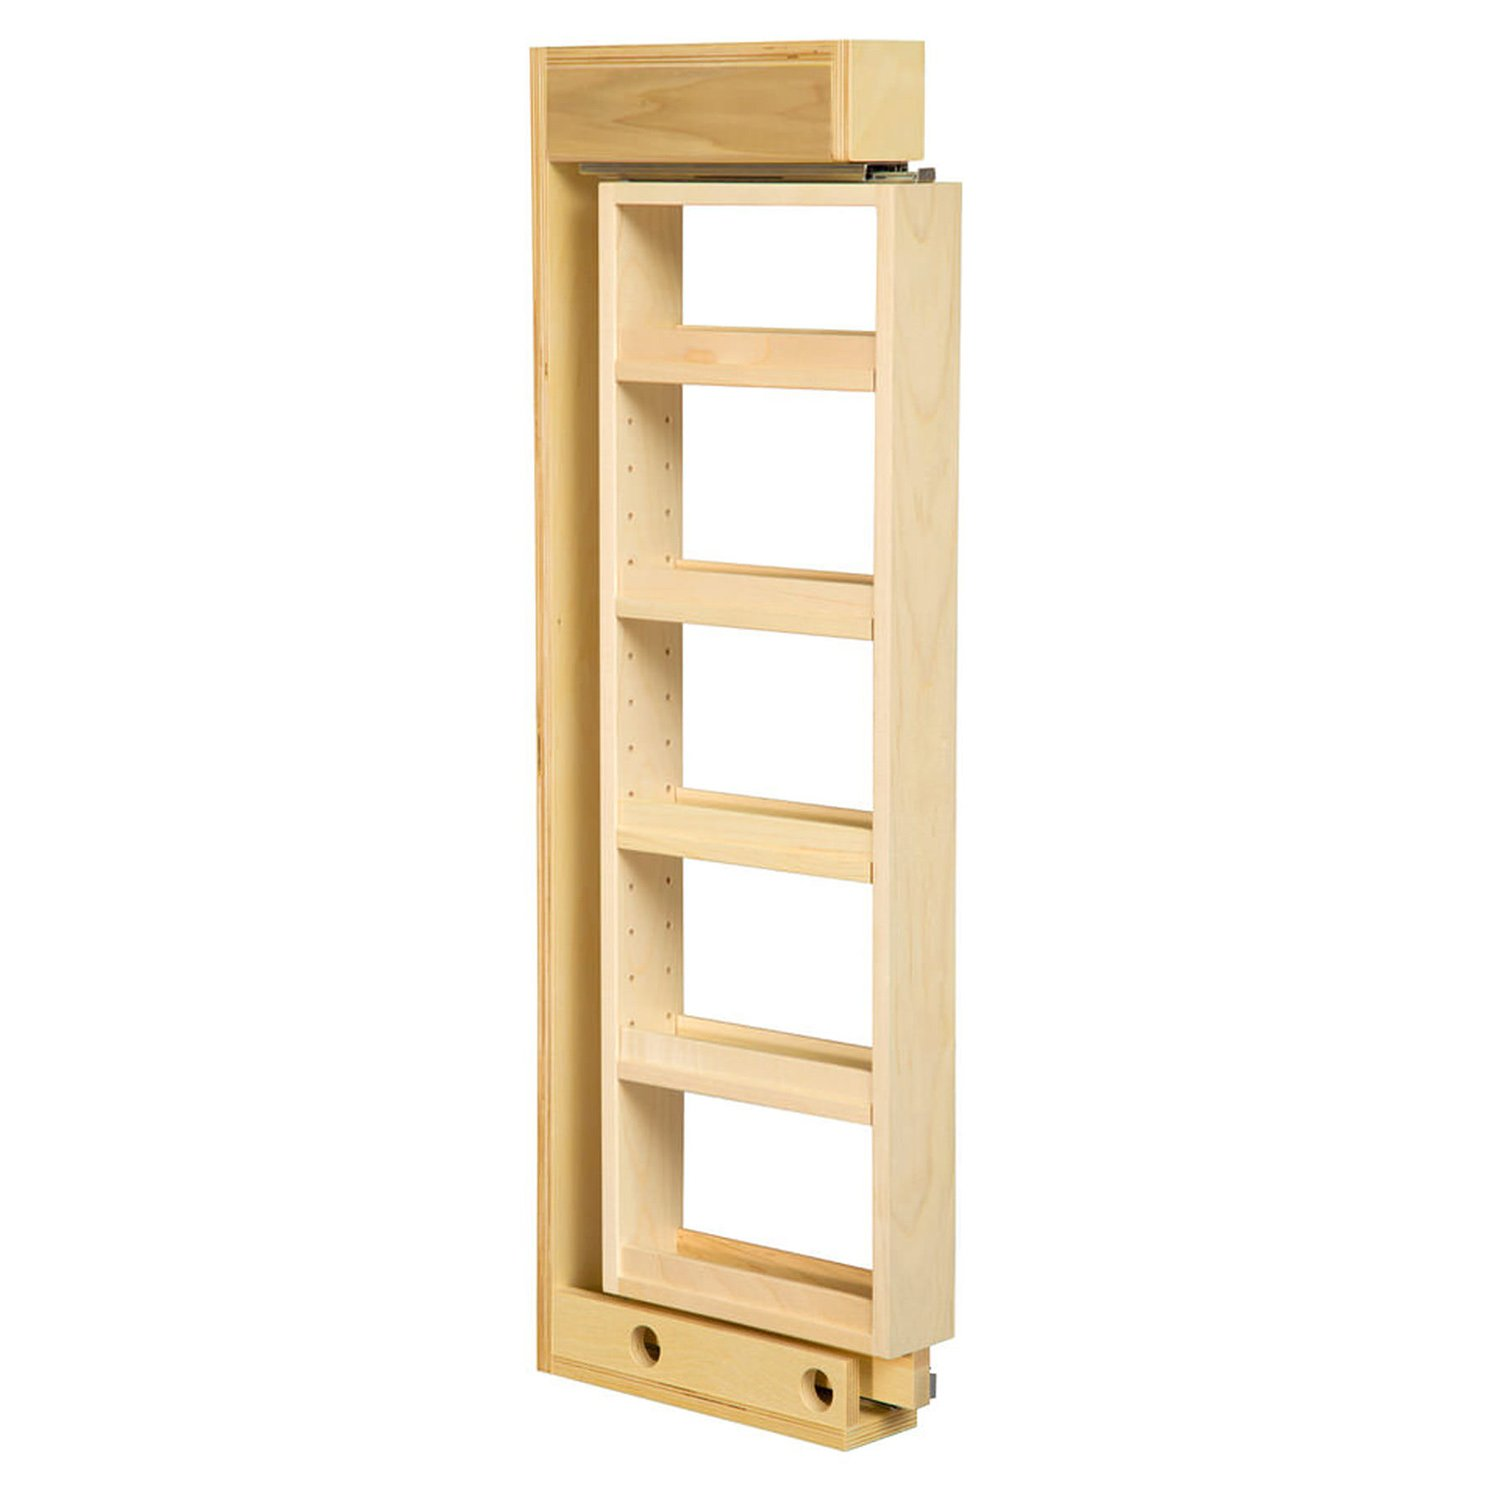 Century Components 3'' Maple Wall Filler with 4 Adjustable Shelves & Slides 3 x 36 x 11